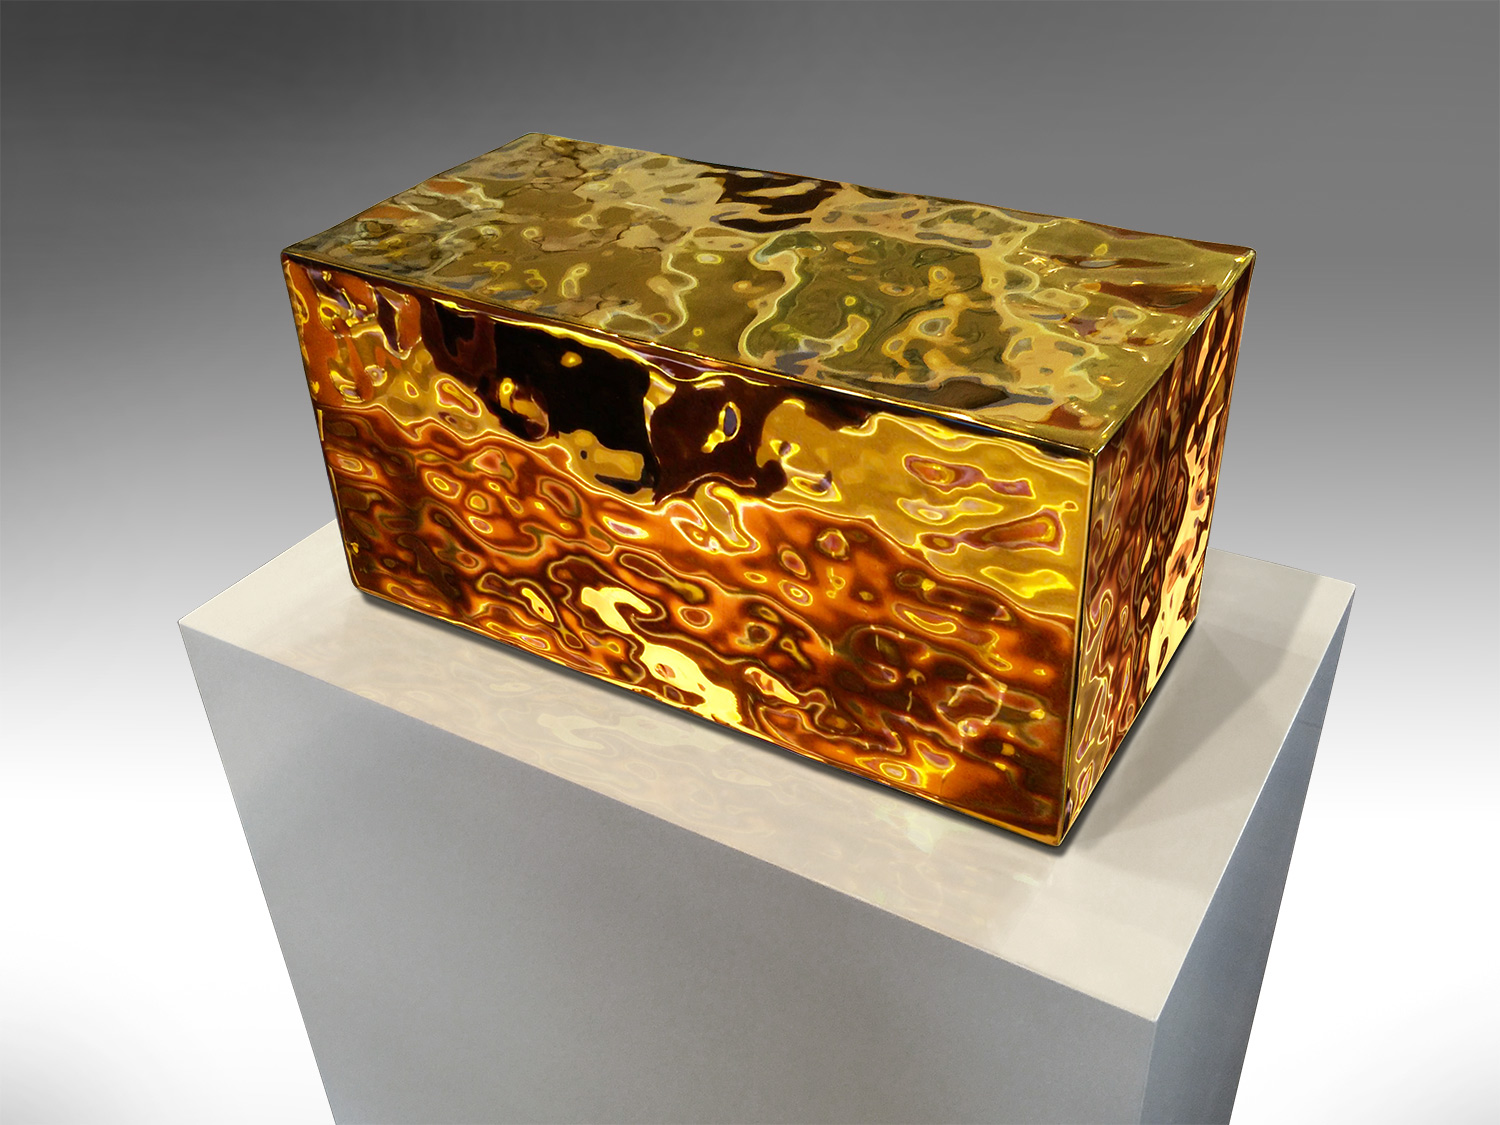 Jewel-Box-Gold-Scaler.jpg